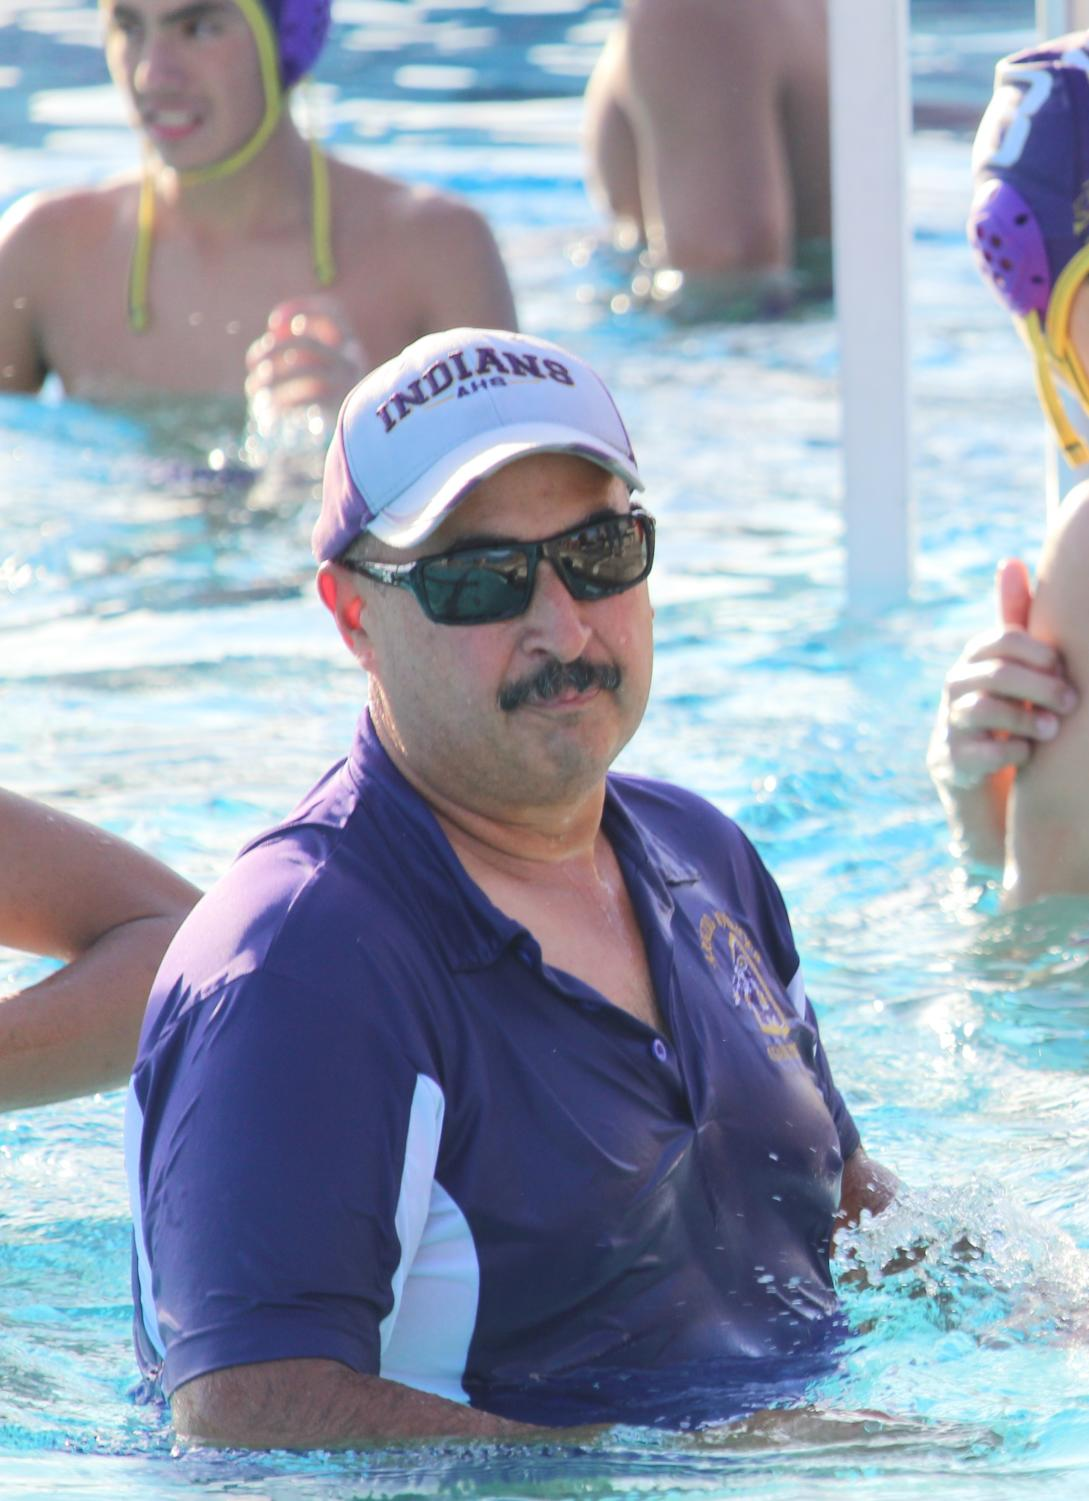 Coach Marin joins his players in the pool so he can show them what to do.